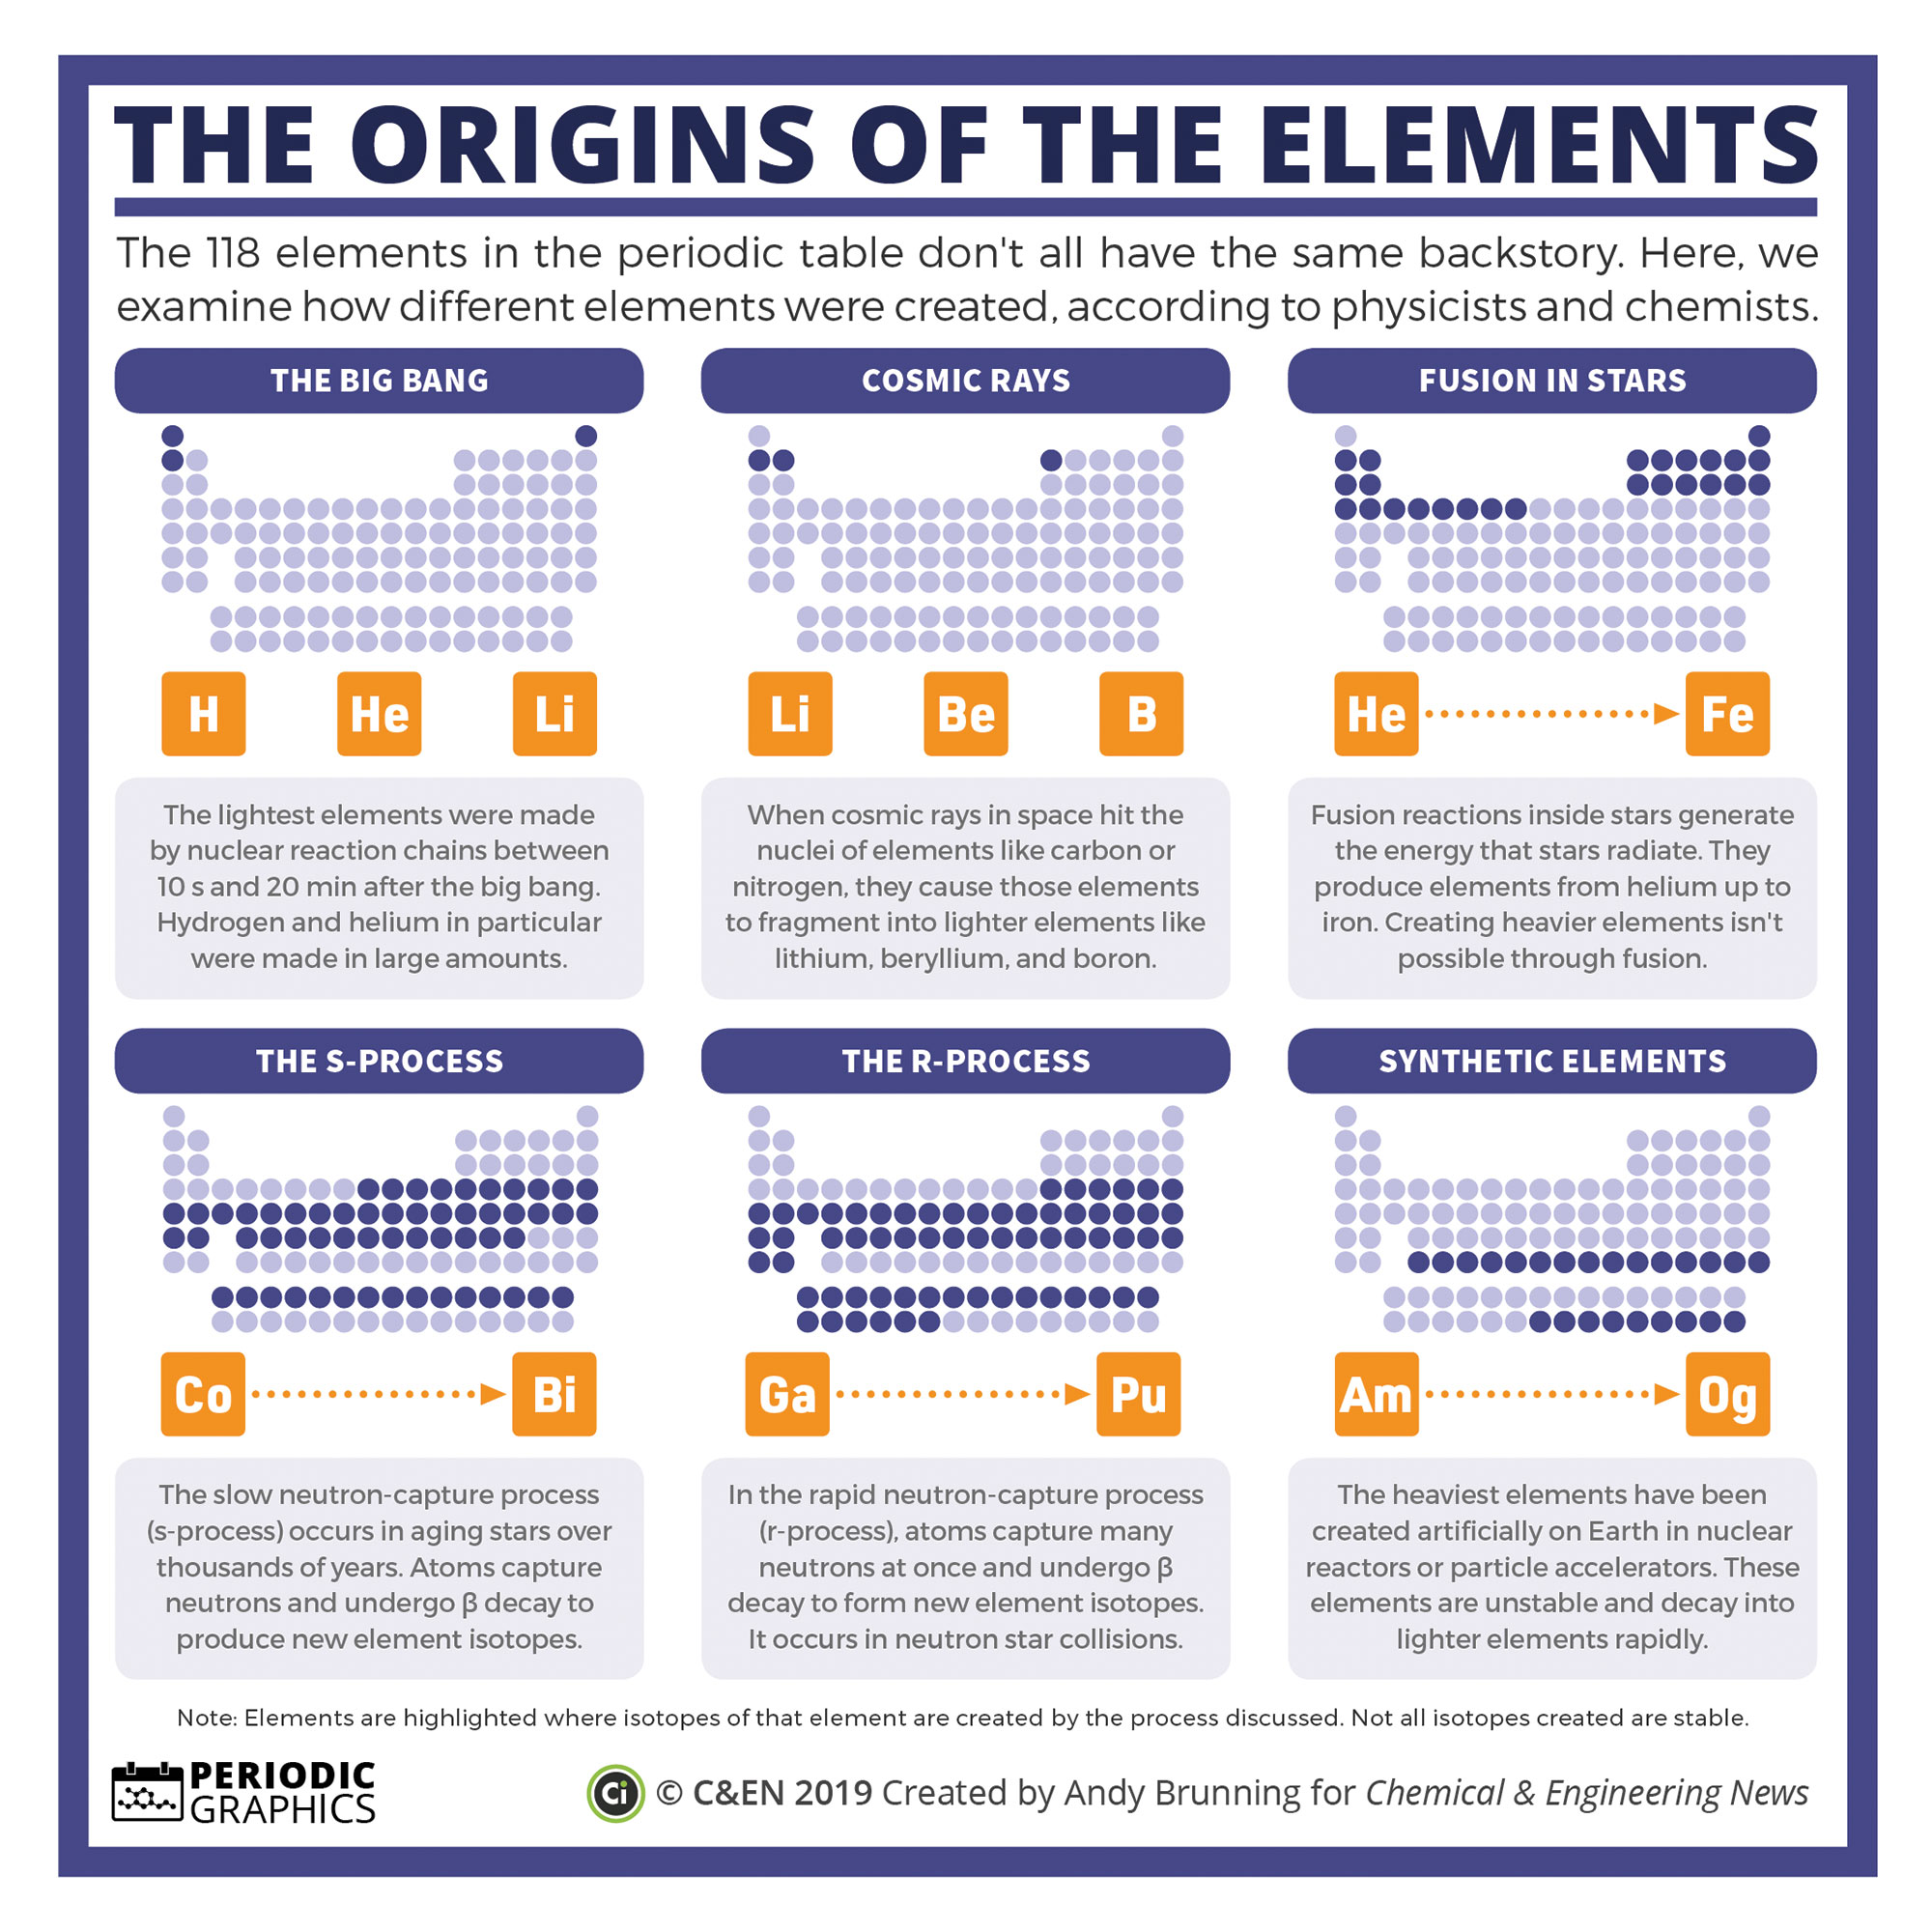 Evidence Linking Chemicals And Learning >> Periodic Graphics